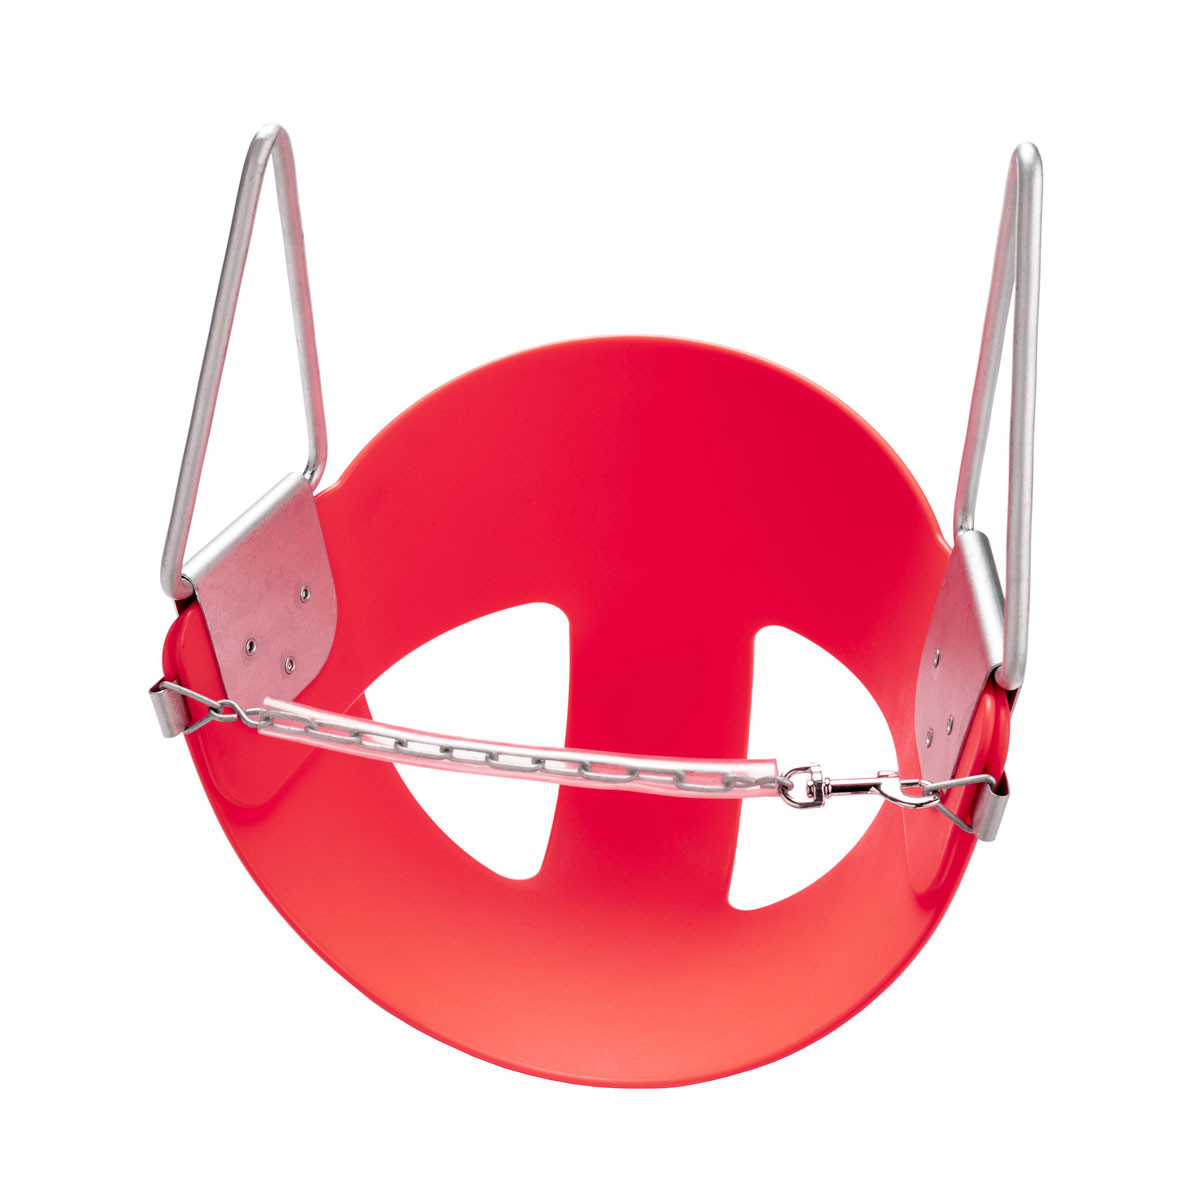 CoPoly Half Bucket Swing Seat - Red